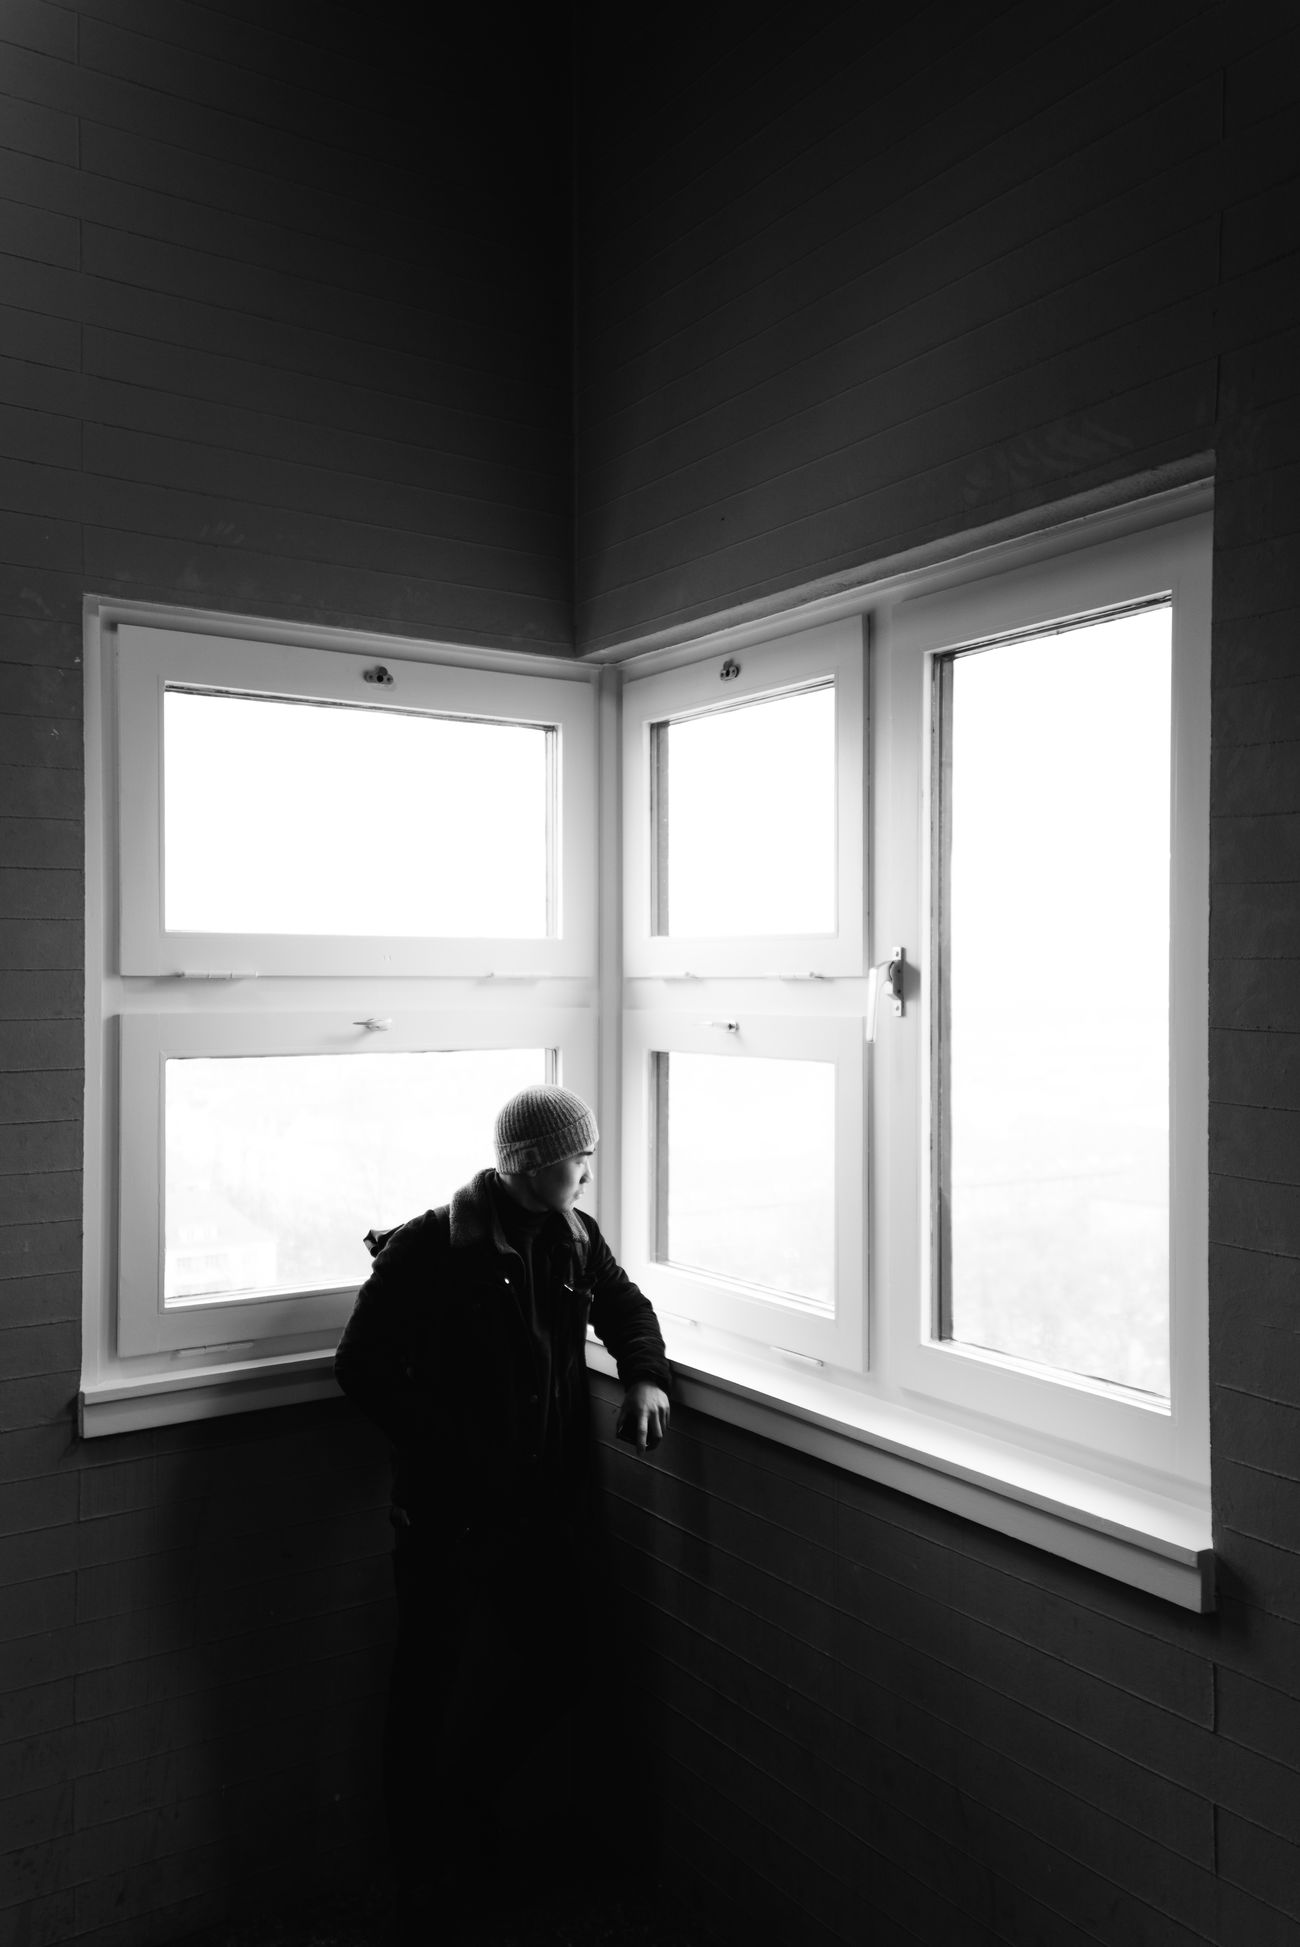 Soft Window Indoors  One Person Real People Adult Adults Only One Man Only Day EyeEmBestPics Eyeemphotography Portrait Of A Friend Portrait Shootermag Light And Shadow Lowlightleague Urban City EyeEm Best Shots Eye4photography  Architecture Sky Young Adult Warm Clothing EyeEm Gallery